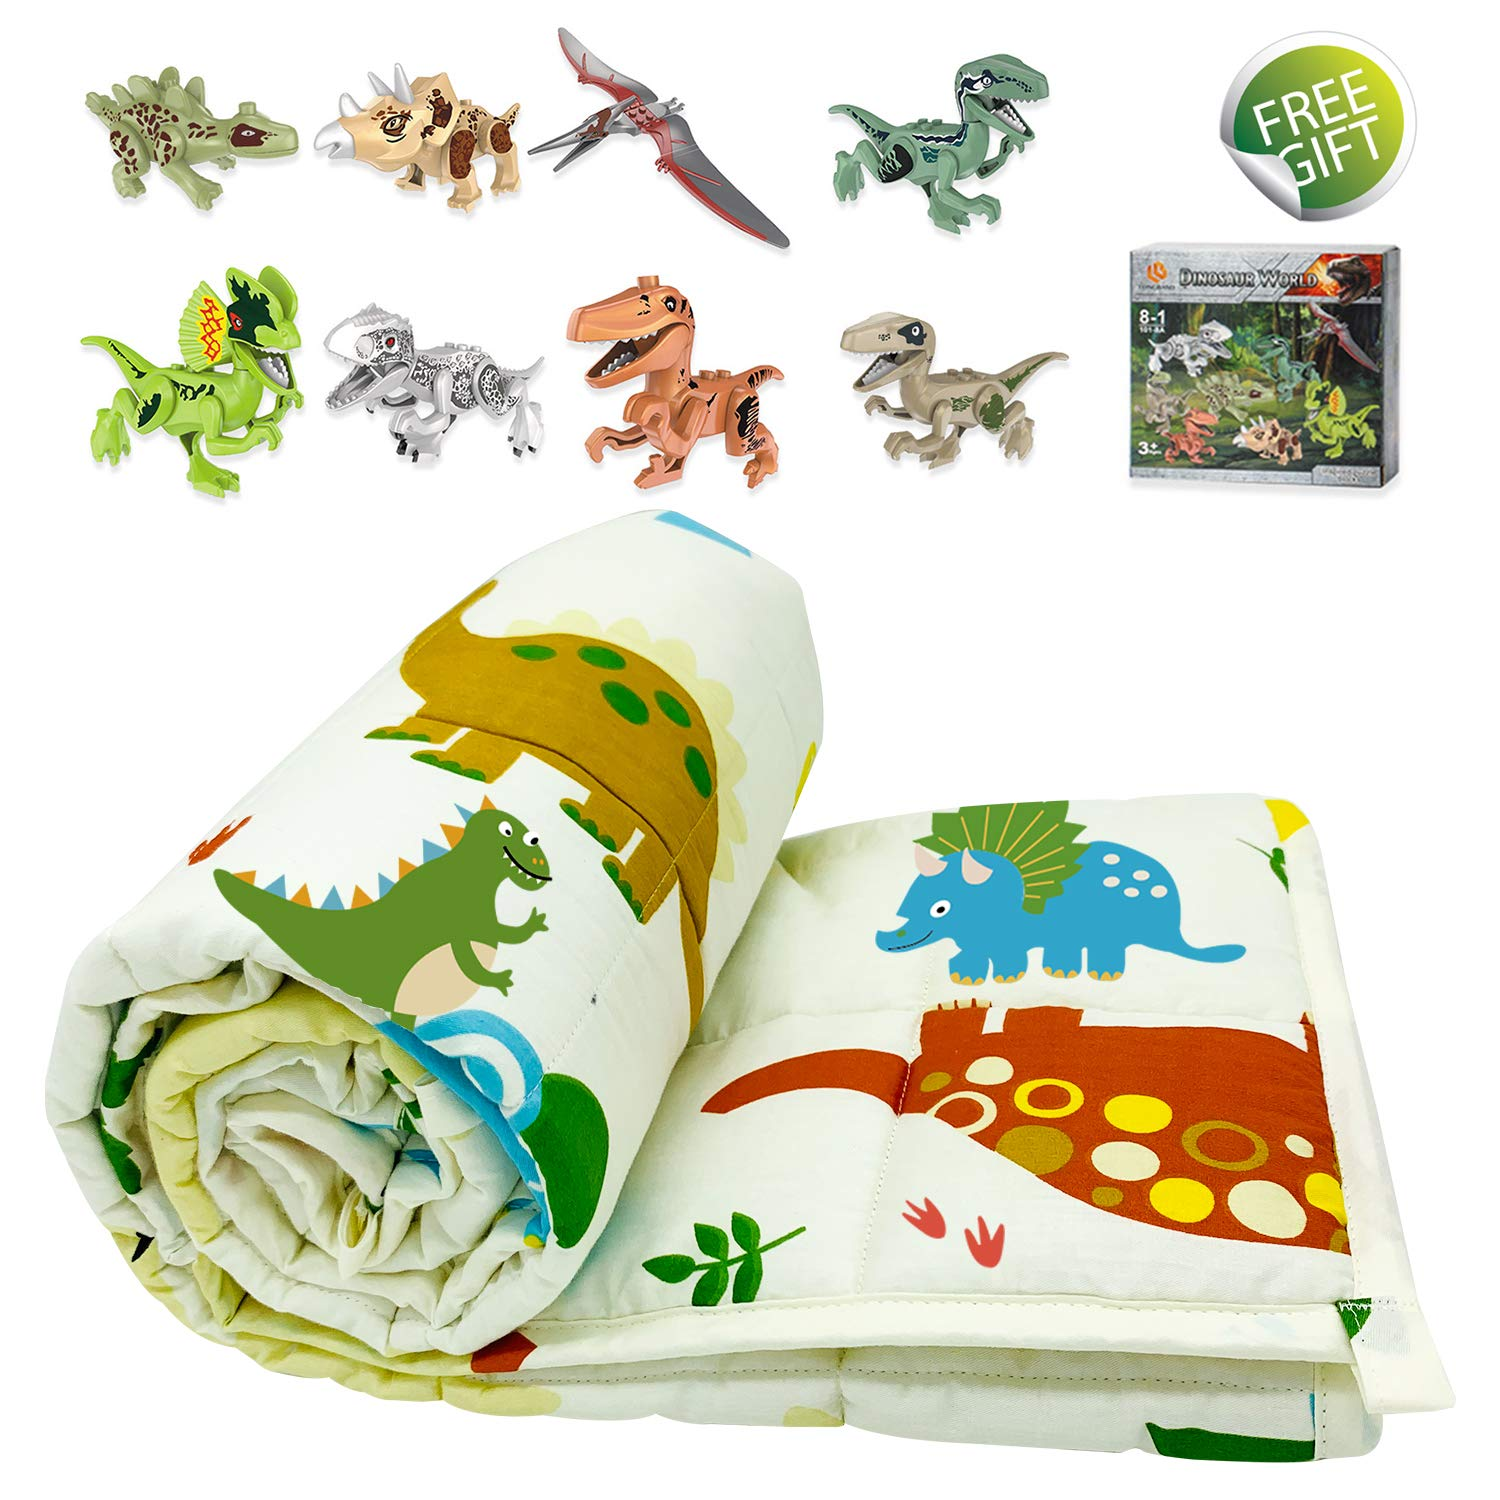 TerriTrophy Kids Weighted Blanket 5lbs,36 x 48inches, with Dinosaur Blocks, 100% Cotton Heavy Weighted Blanket for Kids and Toddlers Gift for Boys Girls Children by TerriTrophy